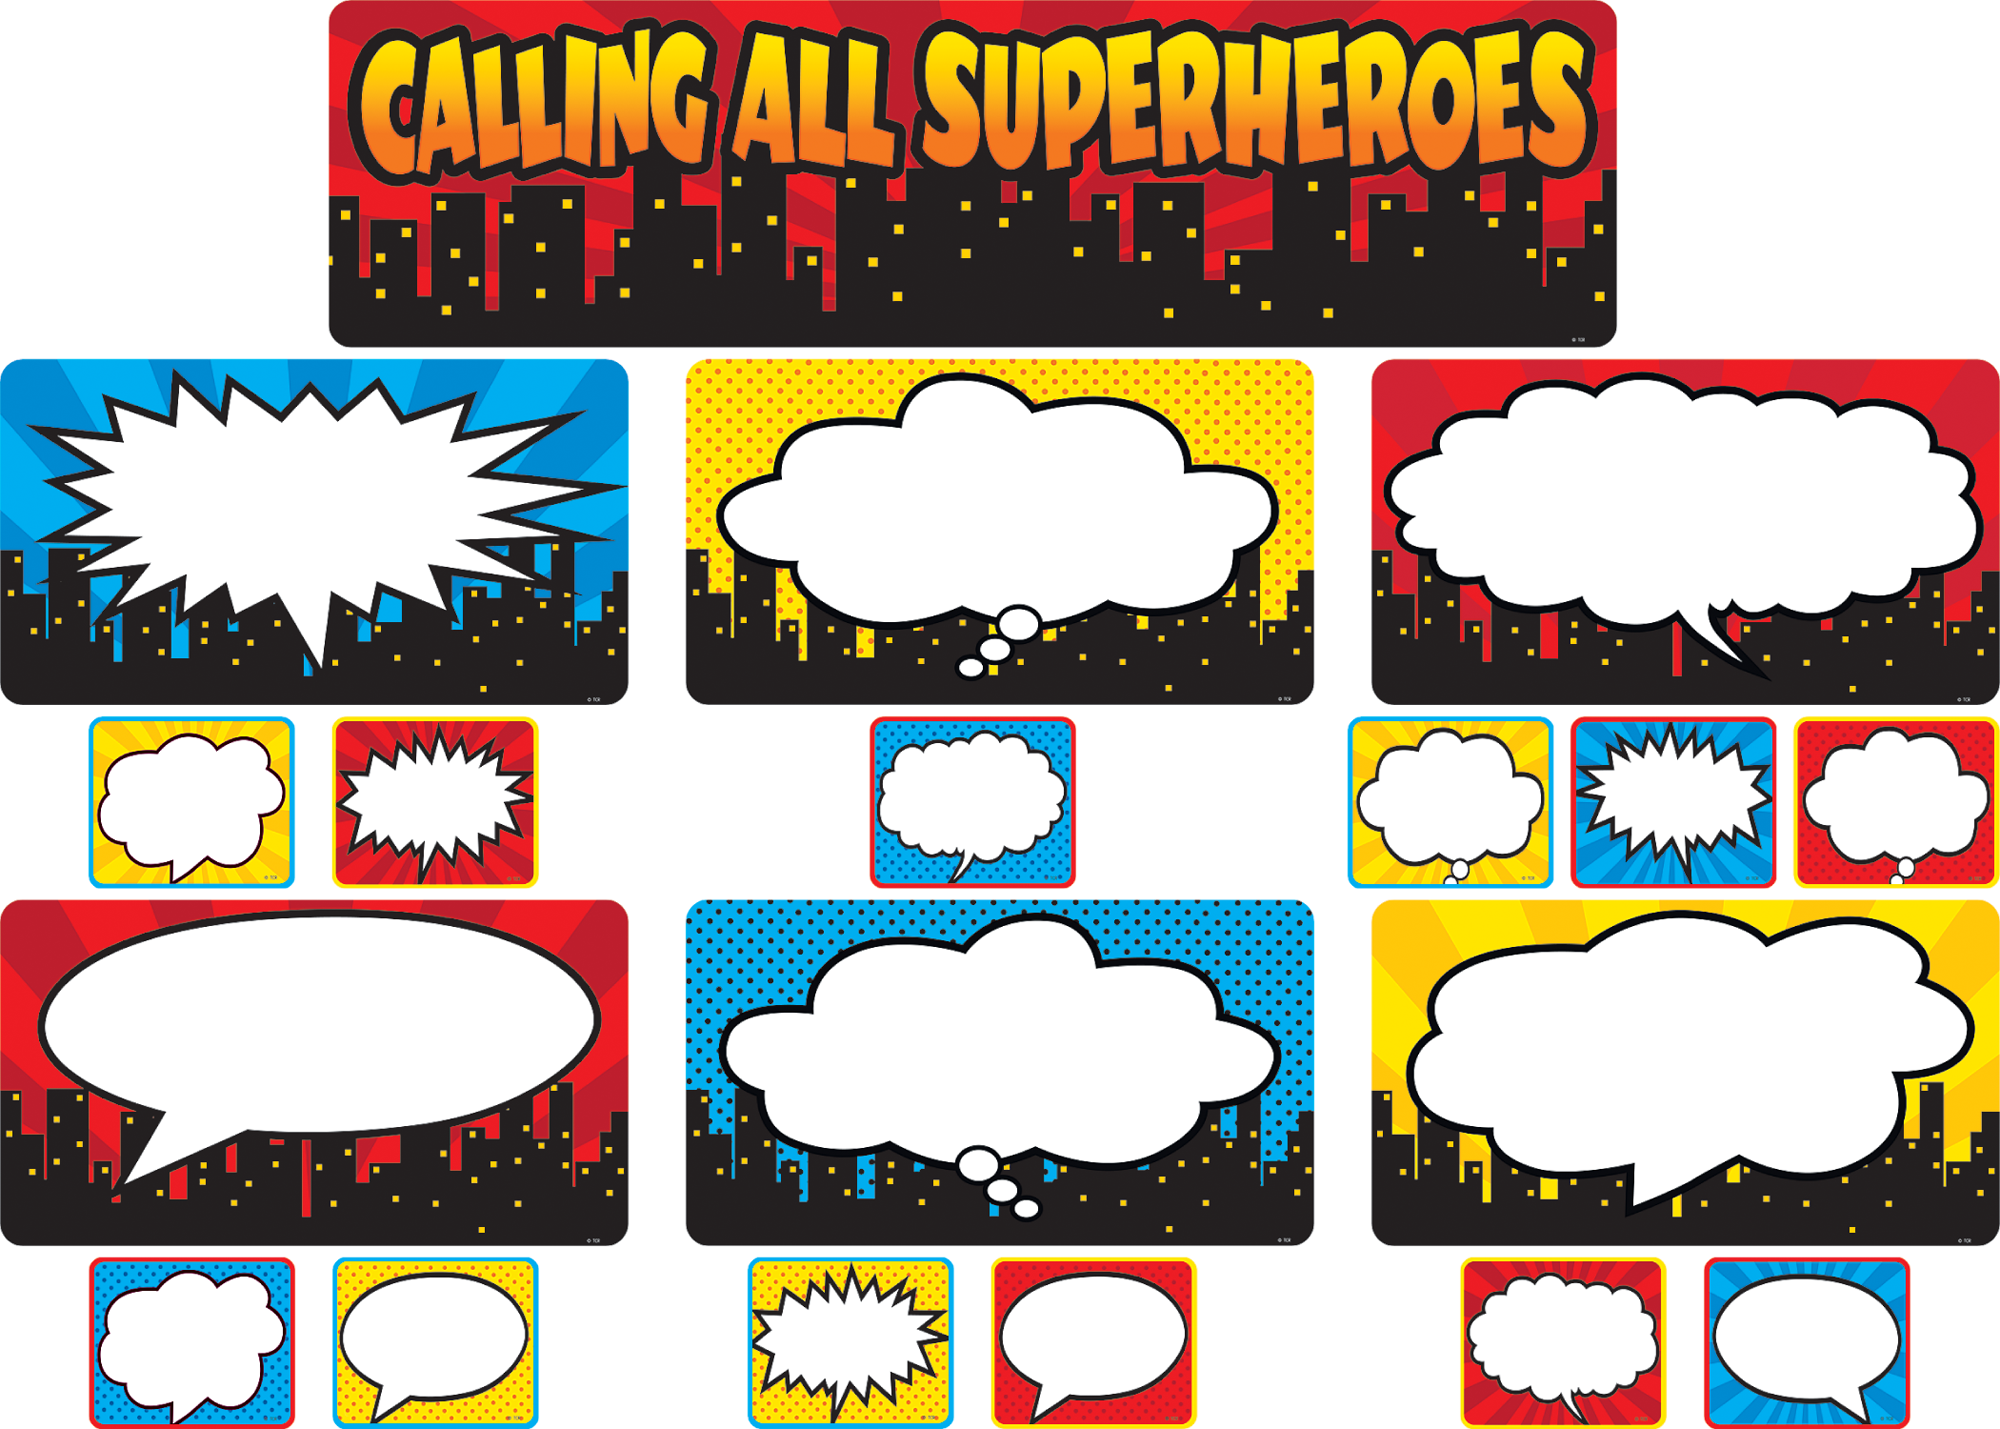 graphic about Superhero Letters Printable named Clipart letters superhero, Clipart letters superhero